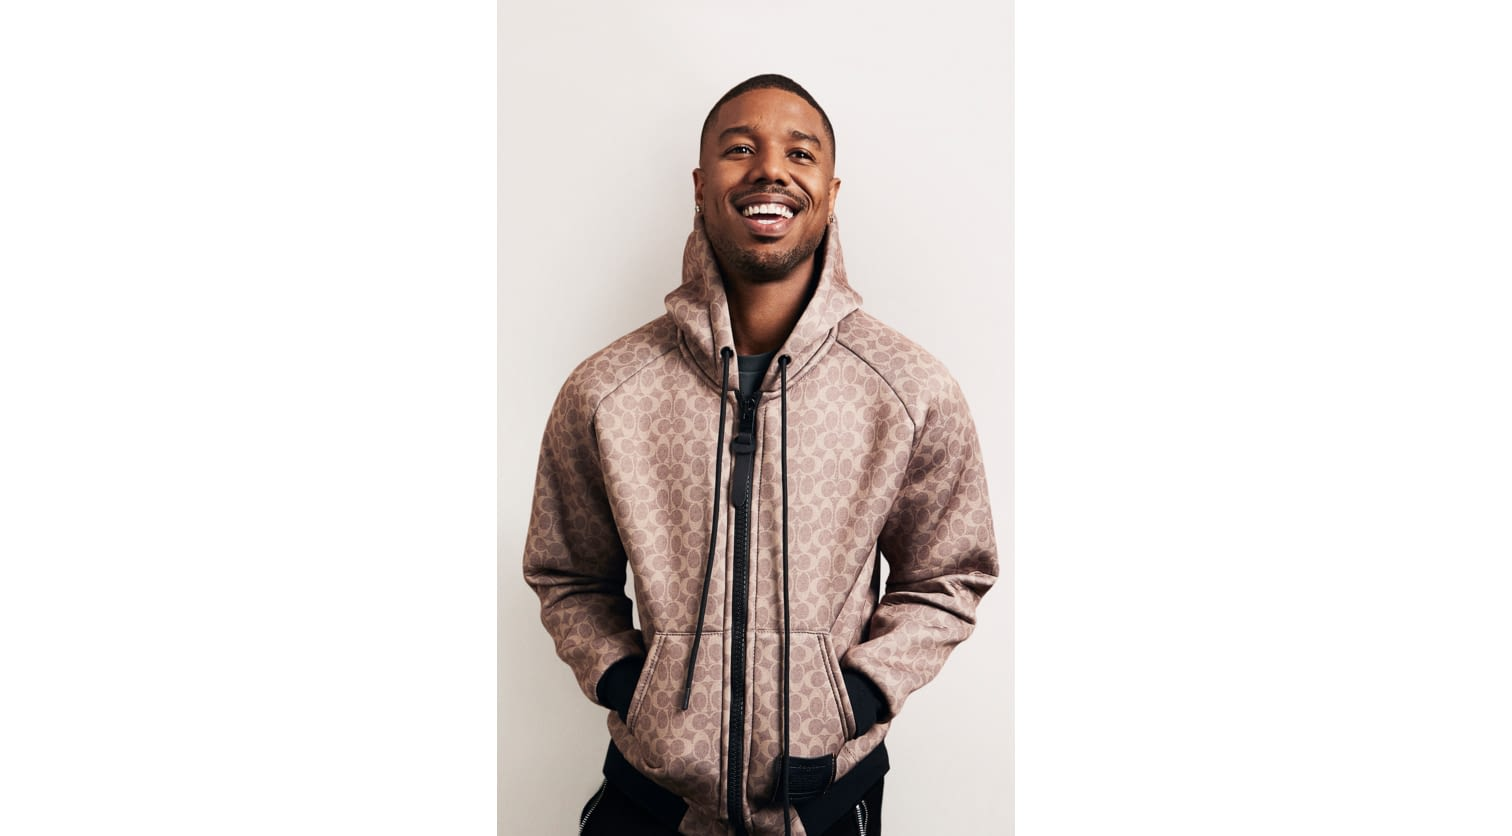 coach-michael-b-jordan-announcement-092018-PR.JPG